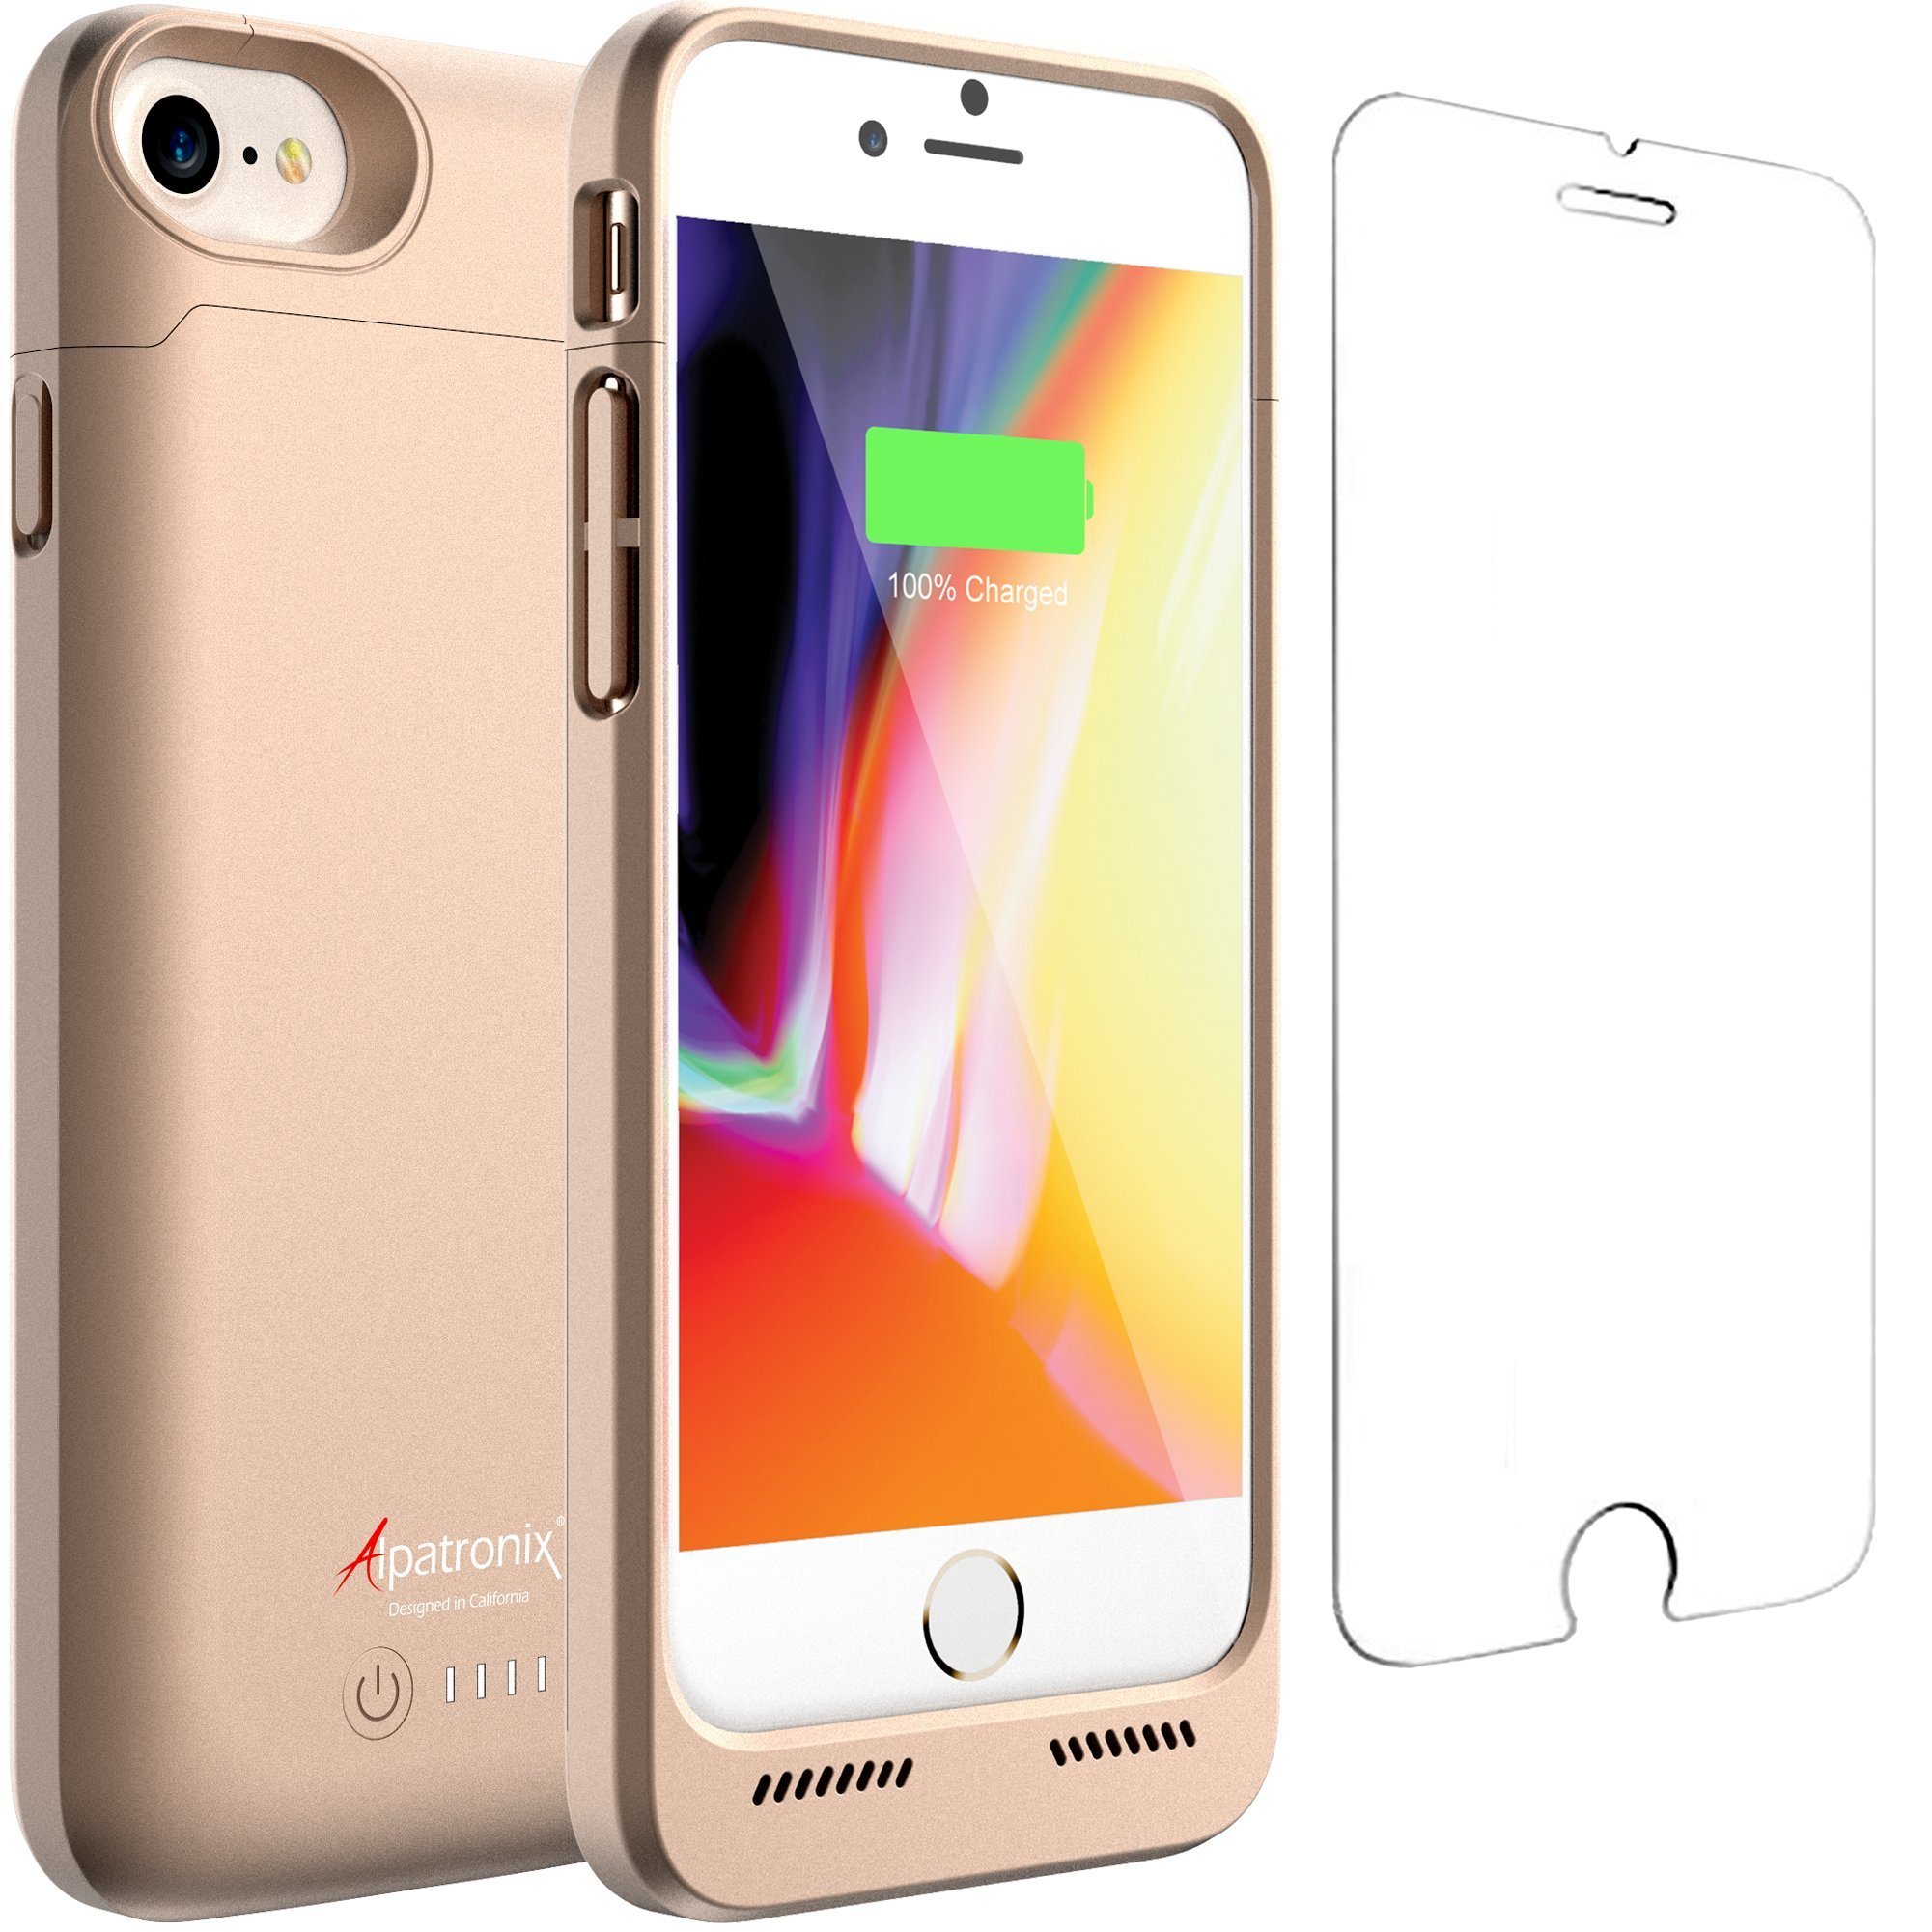 iPhone 8/7 Battery Case Qi Wireless Charging Compatible, Alpatronix BX190 4.7-inch 3200mAh Slim Rechargeable Extended Protective Portable Charger for iPhone 8 & iPhone 7 [Apple Certified Chip] - Gold